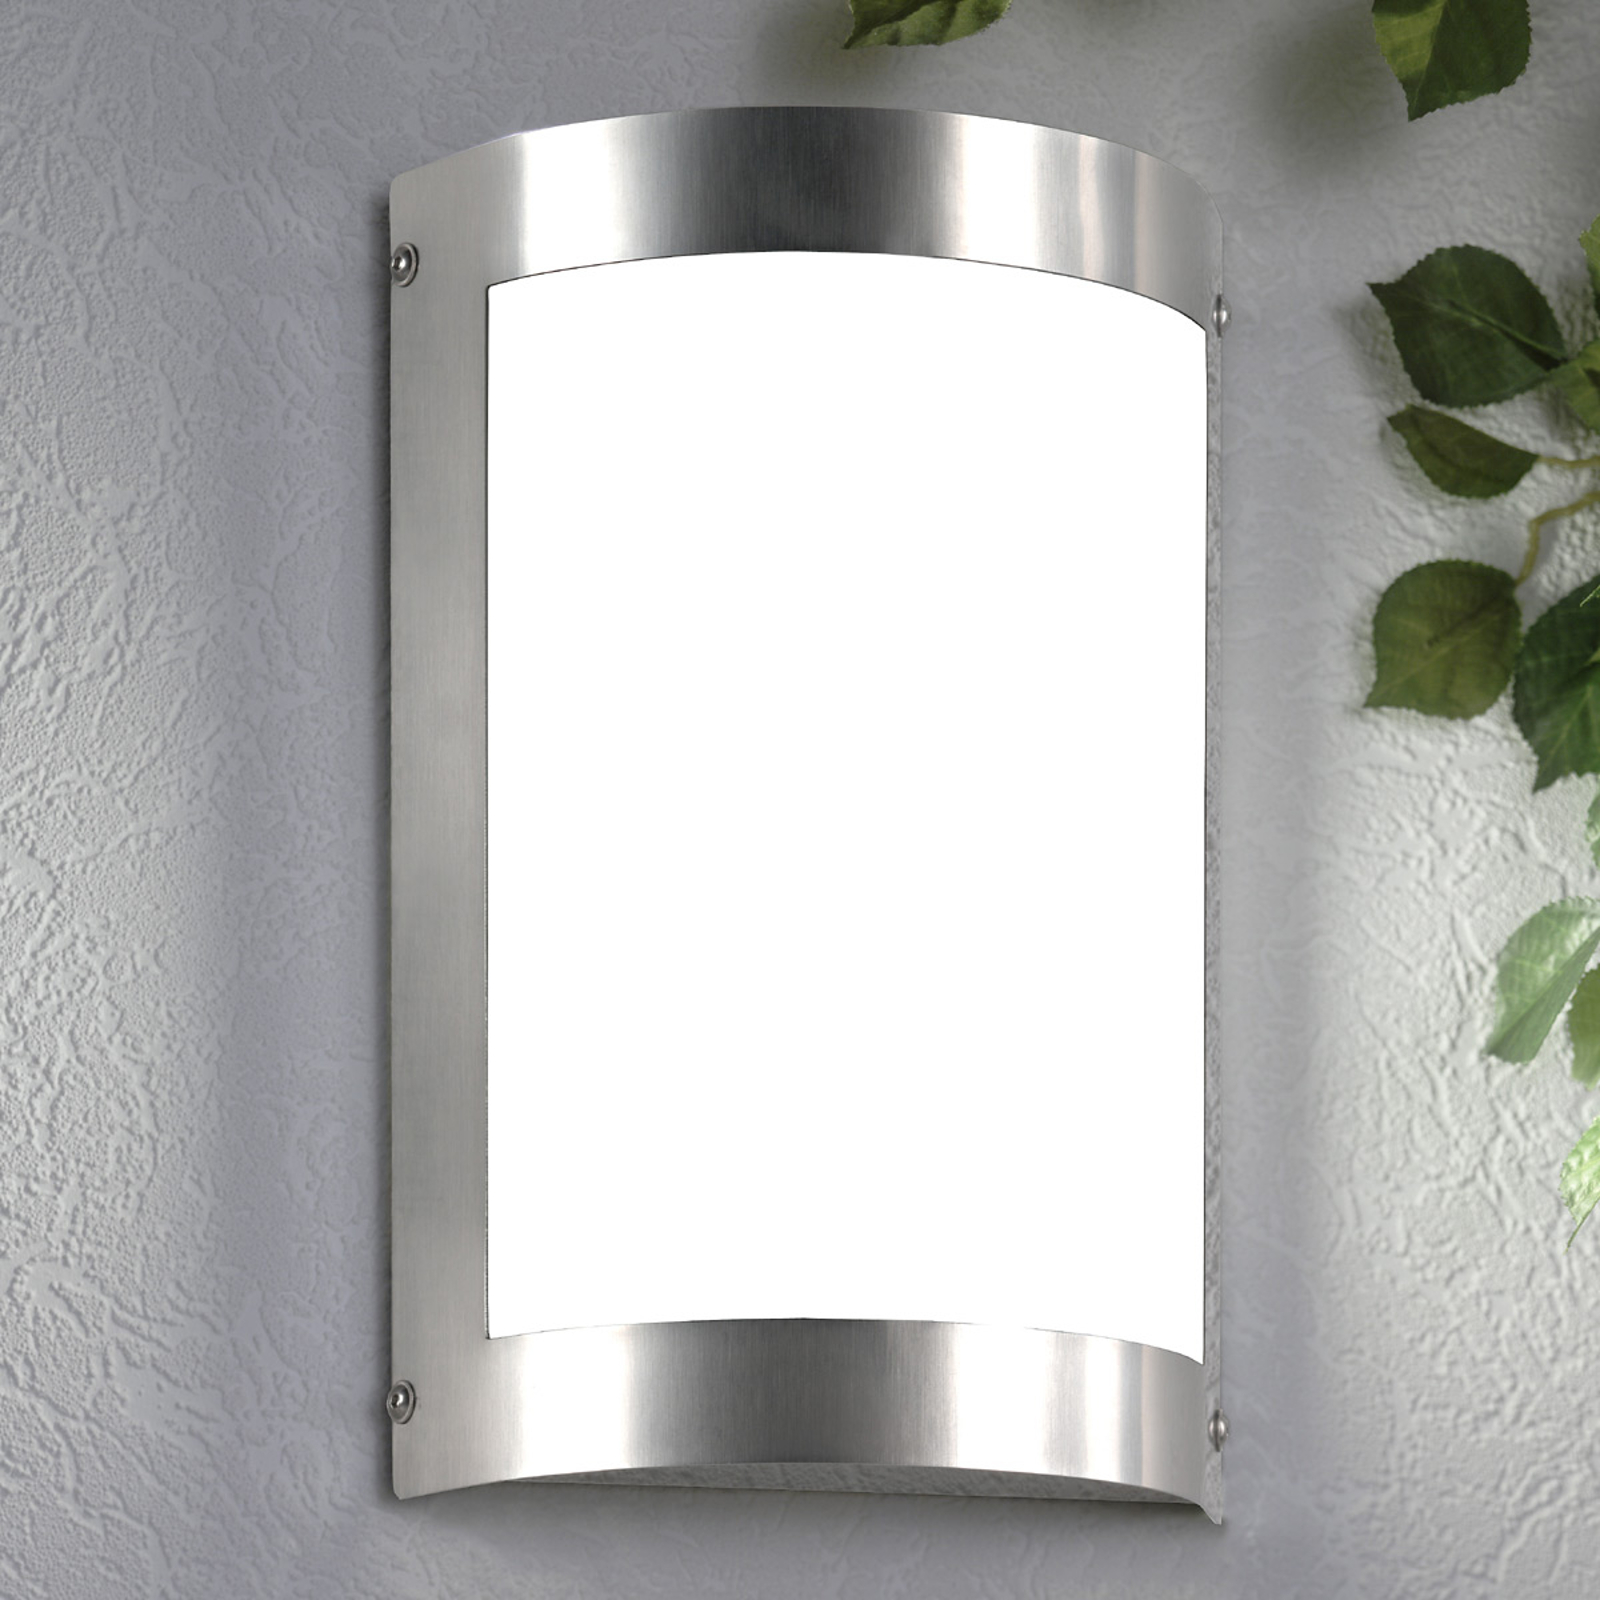 Aplique LED de pared exterior Marco 3